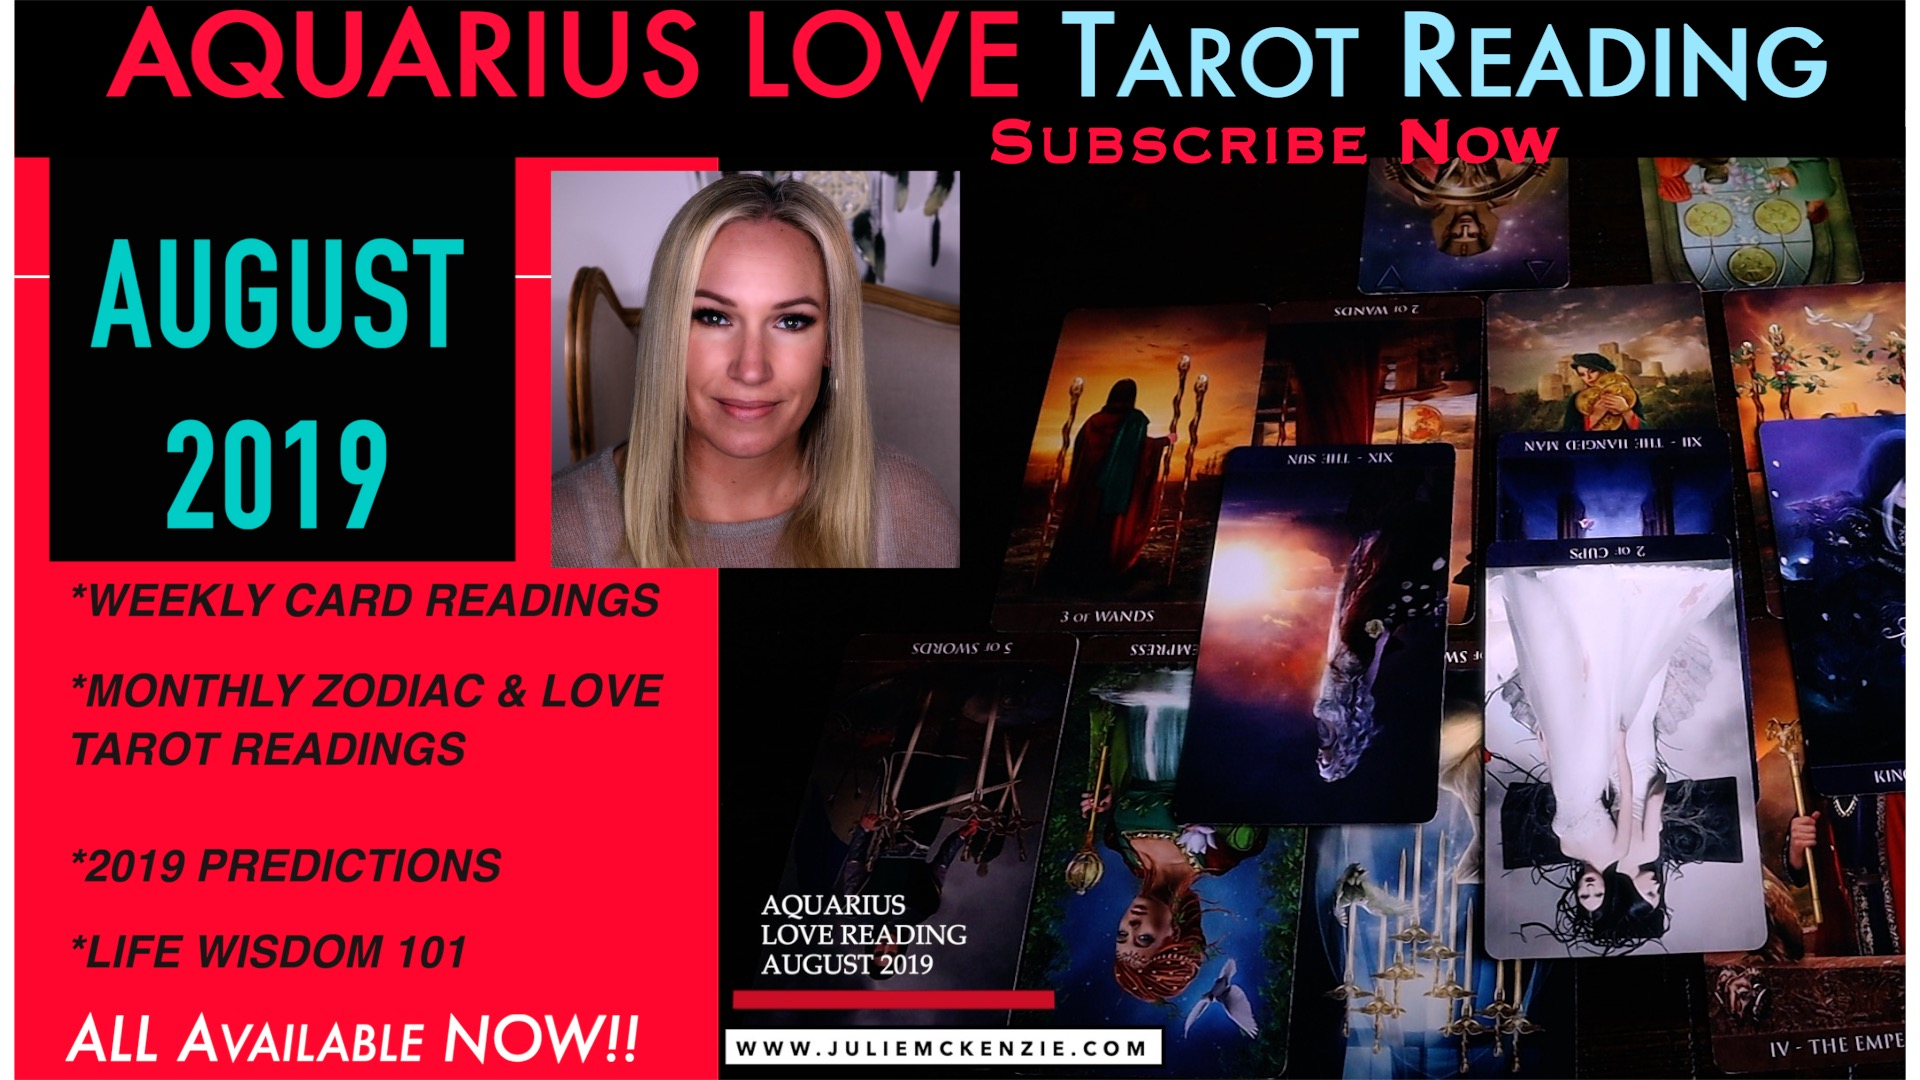 AQUARIUS LOVE Reading AUG 2019 - Fight for Love you Want!